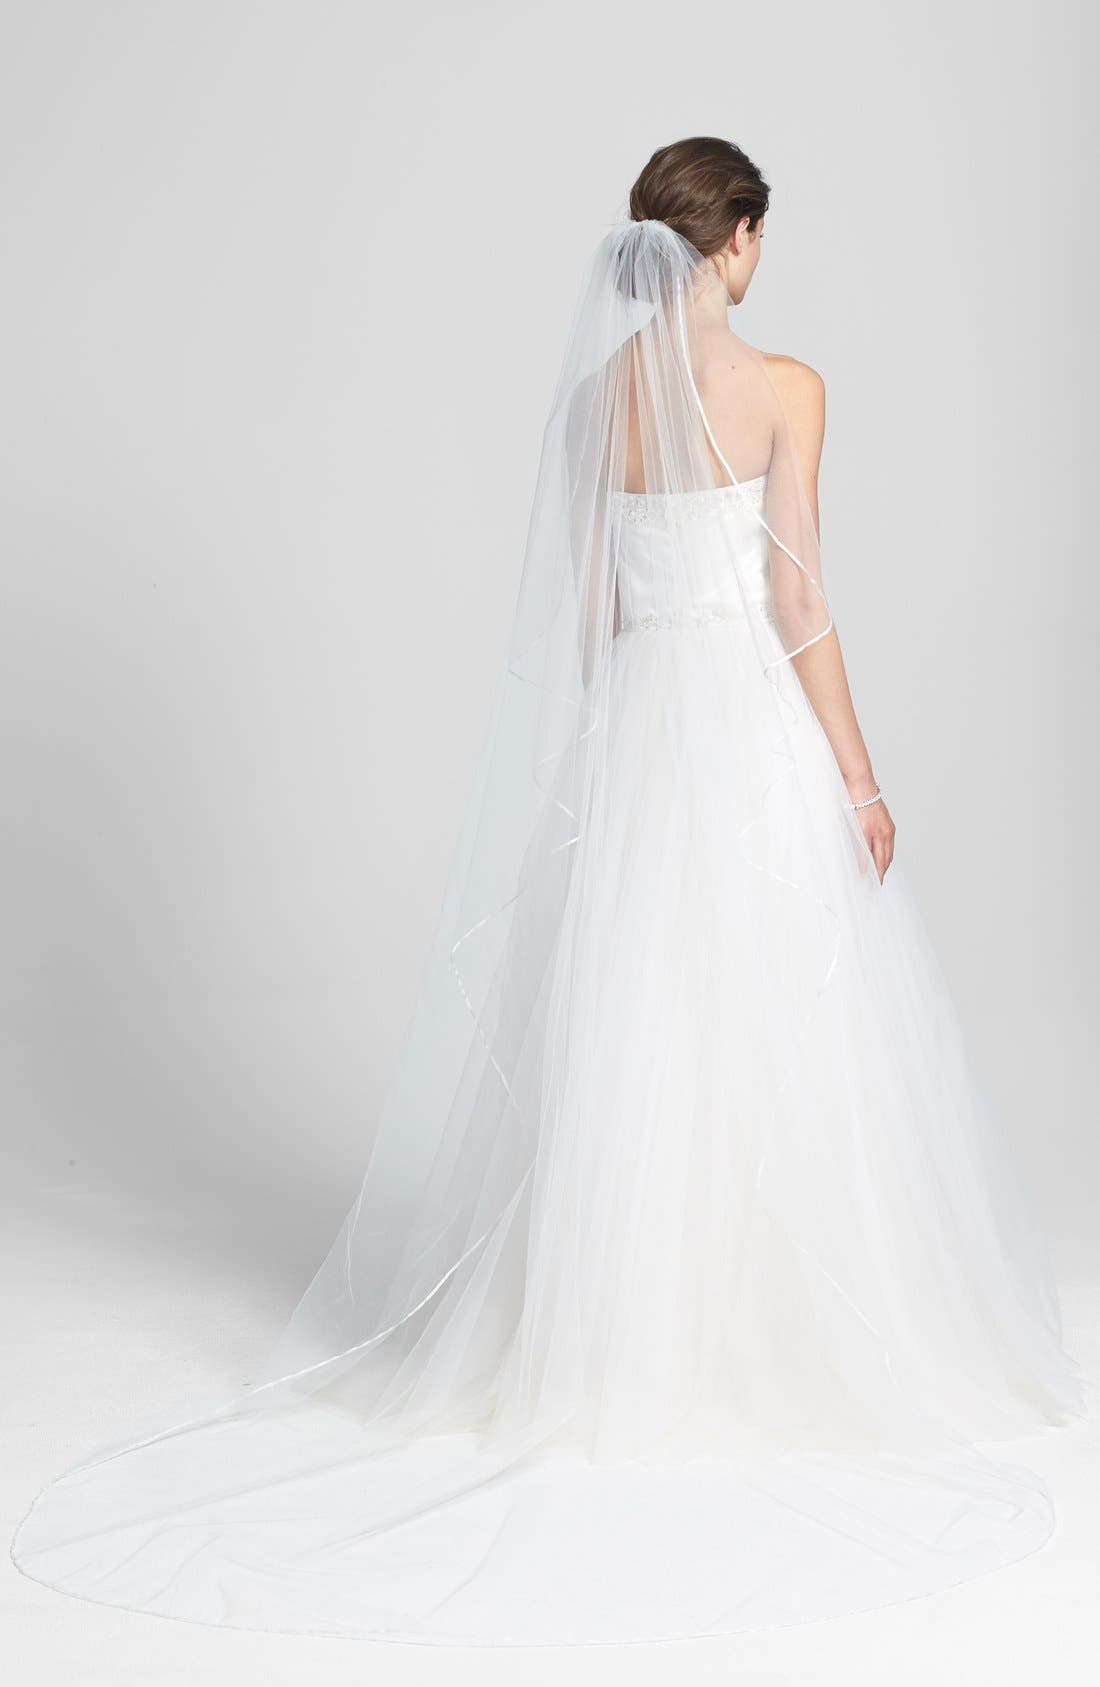 Alternate Image 1 Selected - Wedding Belles New York 'Mable' Satin Trim Cathedral Veil (Nordstrom Exclusive)